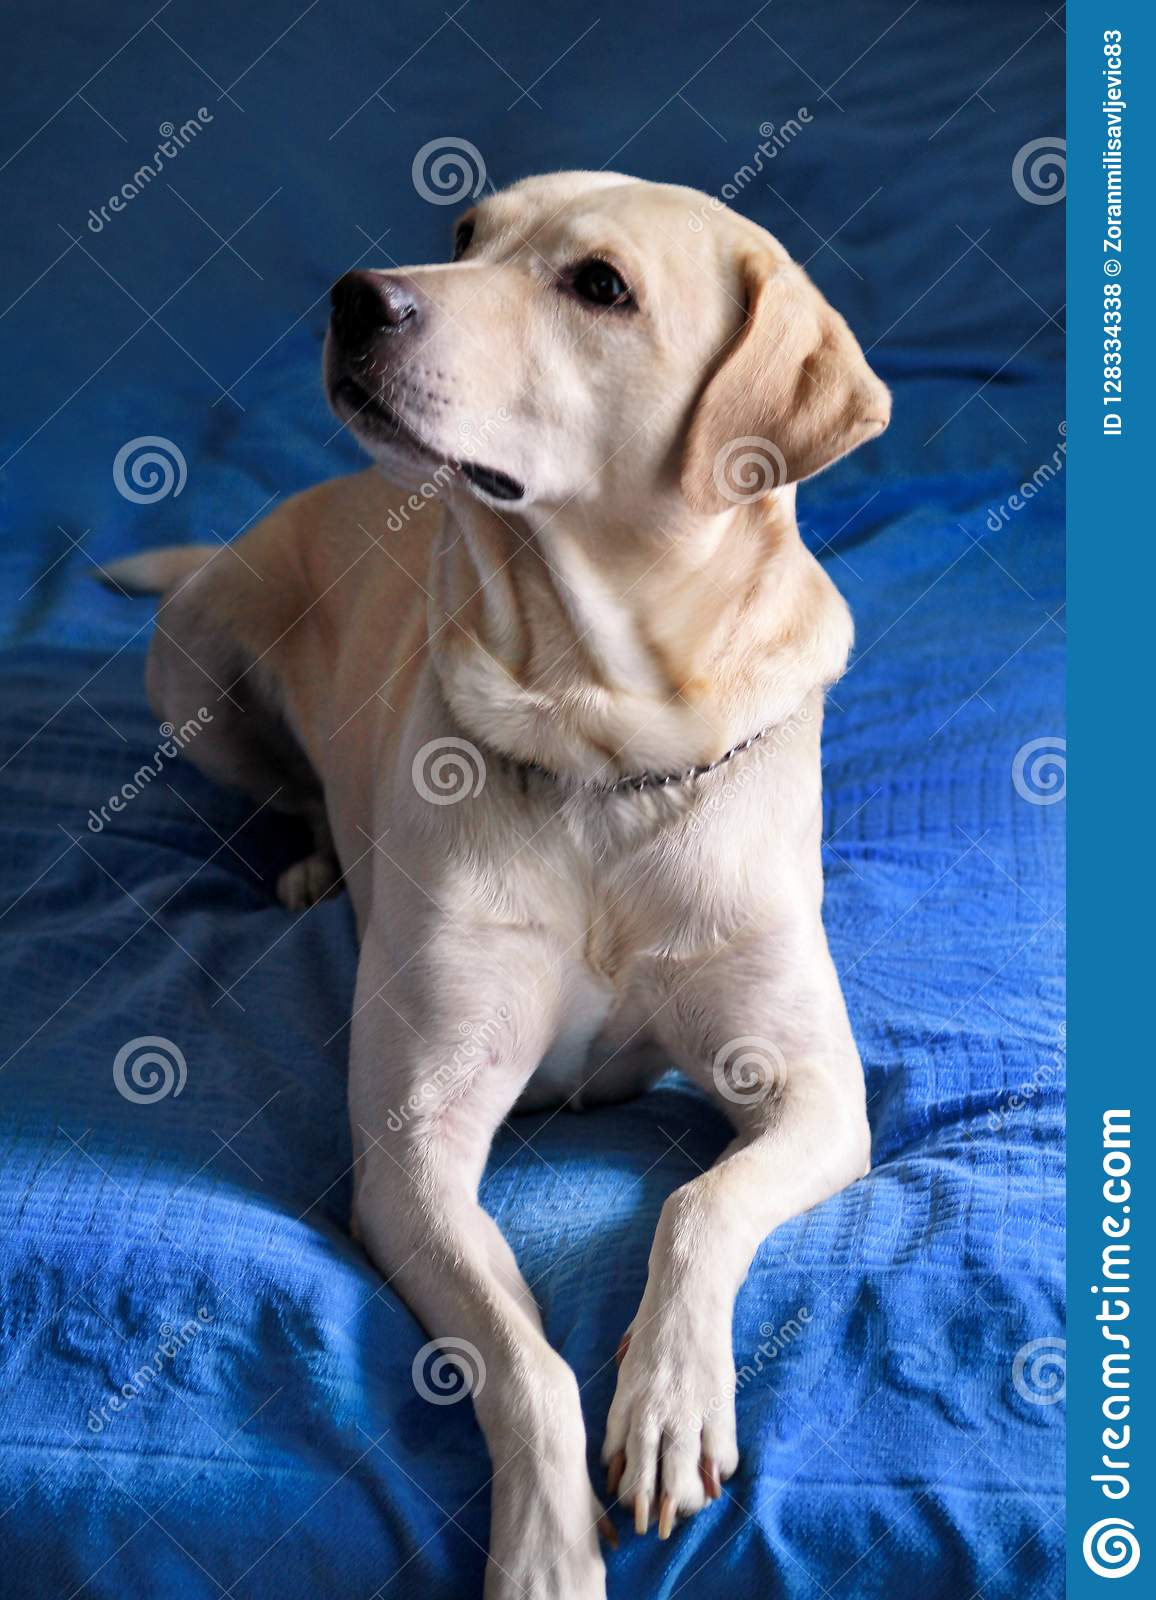 Dog is resting at home. Photo of yellow labrador retriever dog posing and resting on bed for photo shoot. Portrait of labrador.